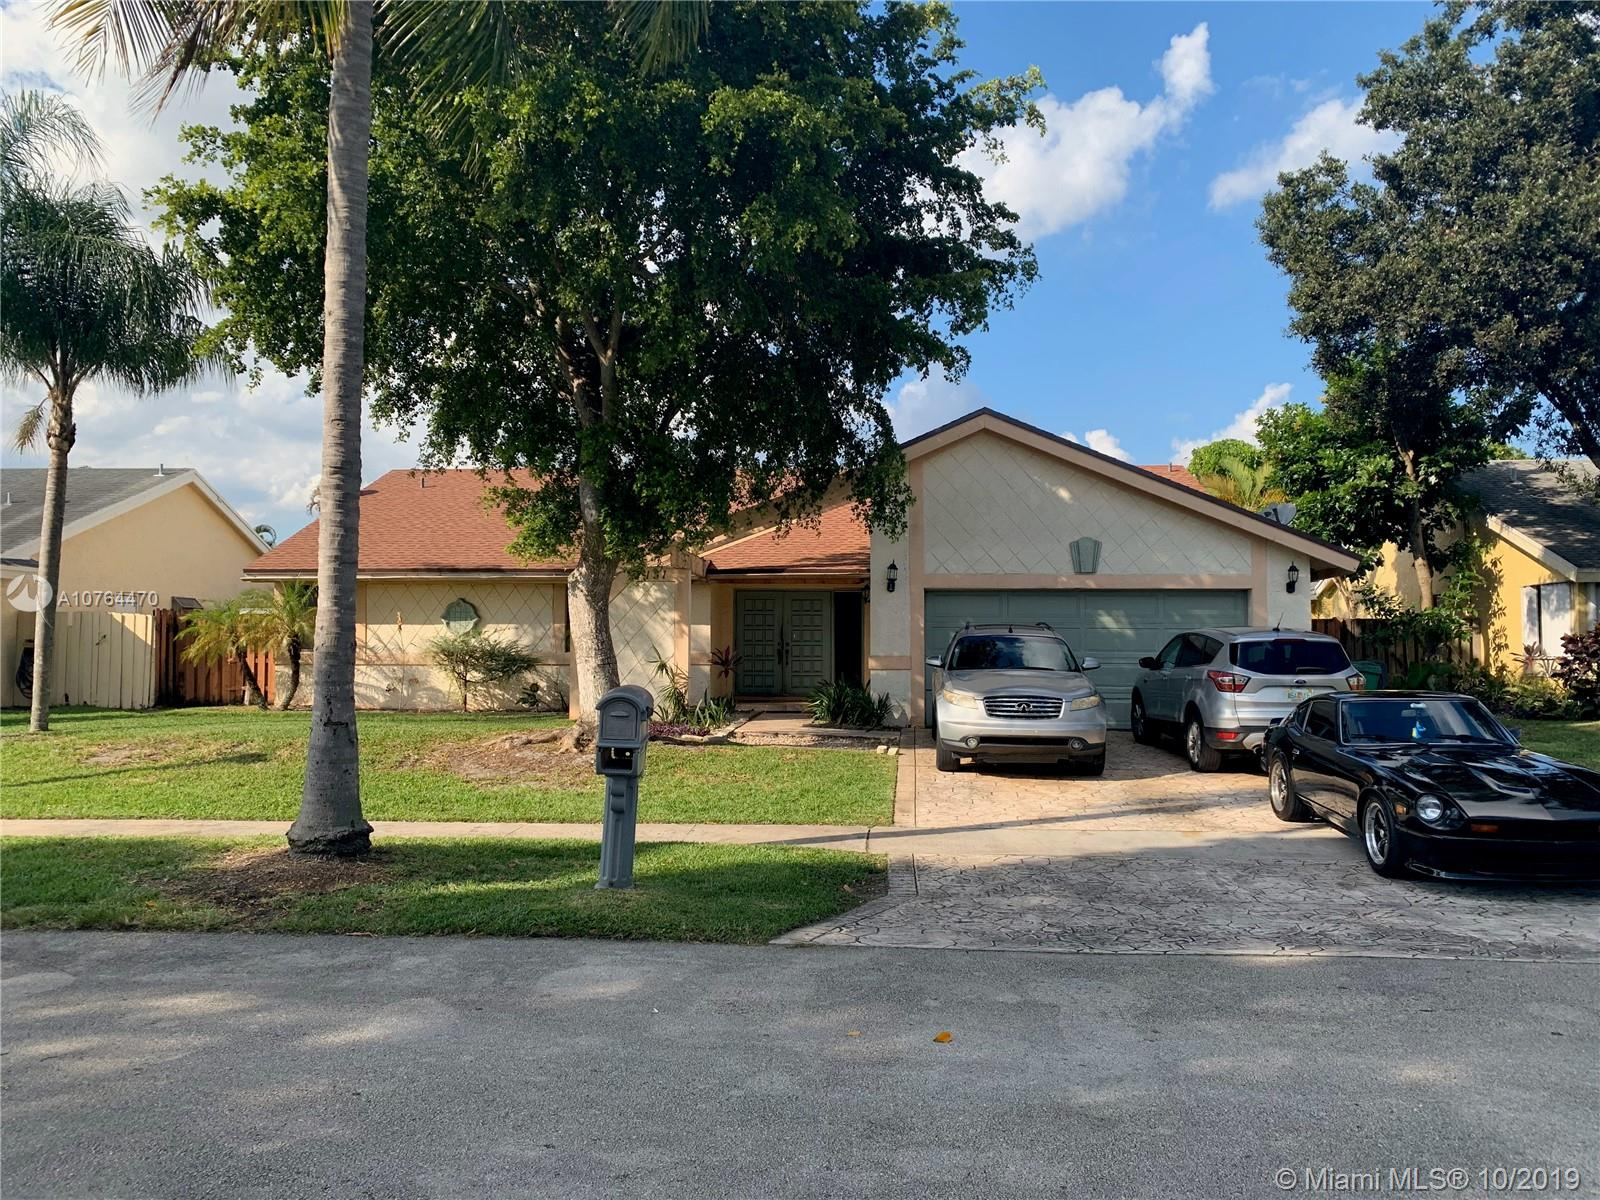 3 BED 2 Bath SFR.  Cosmetic Damage. Needs other minor repairs. Paint and Pool not in great shape.  UNAPPROVED Short Sale. PLEASE DO NOT DISTURB Owners.  NO CALLS please.  EMAIL ONLY for all inquiries and offers.